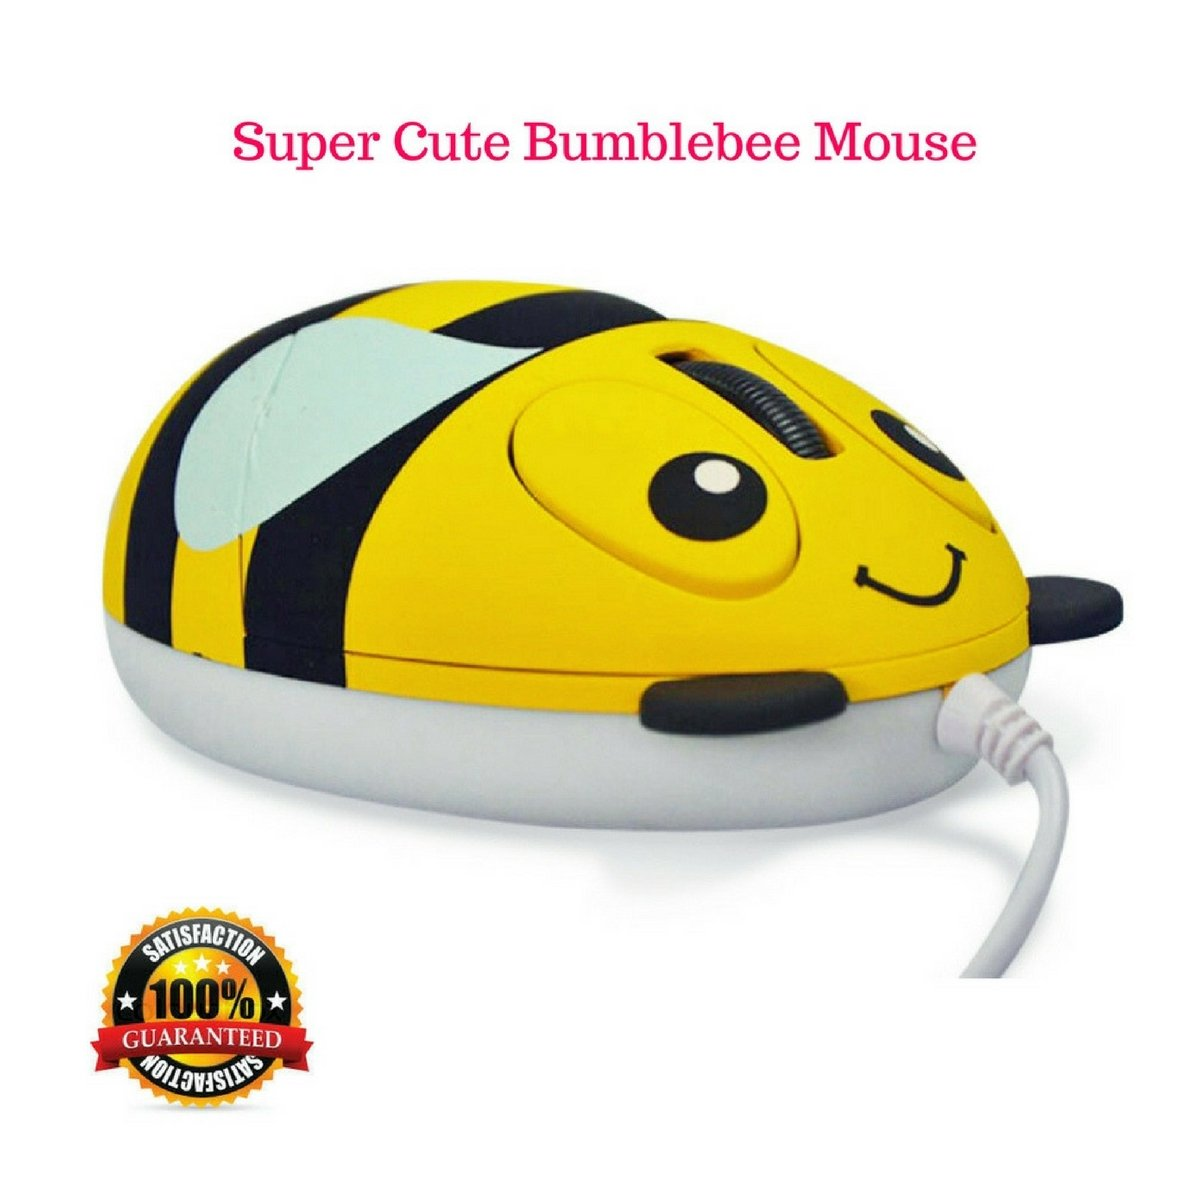 Kids Wired Mouse for Computer, Laptop, PC – Small Mini Optical Mice - Cute Bumblebee with Ergonomic Design for Children's Small Hands